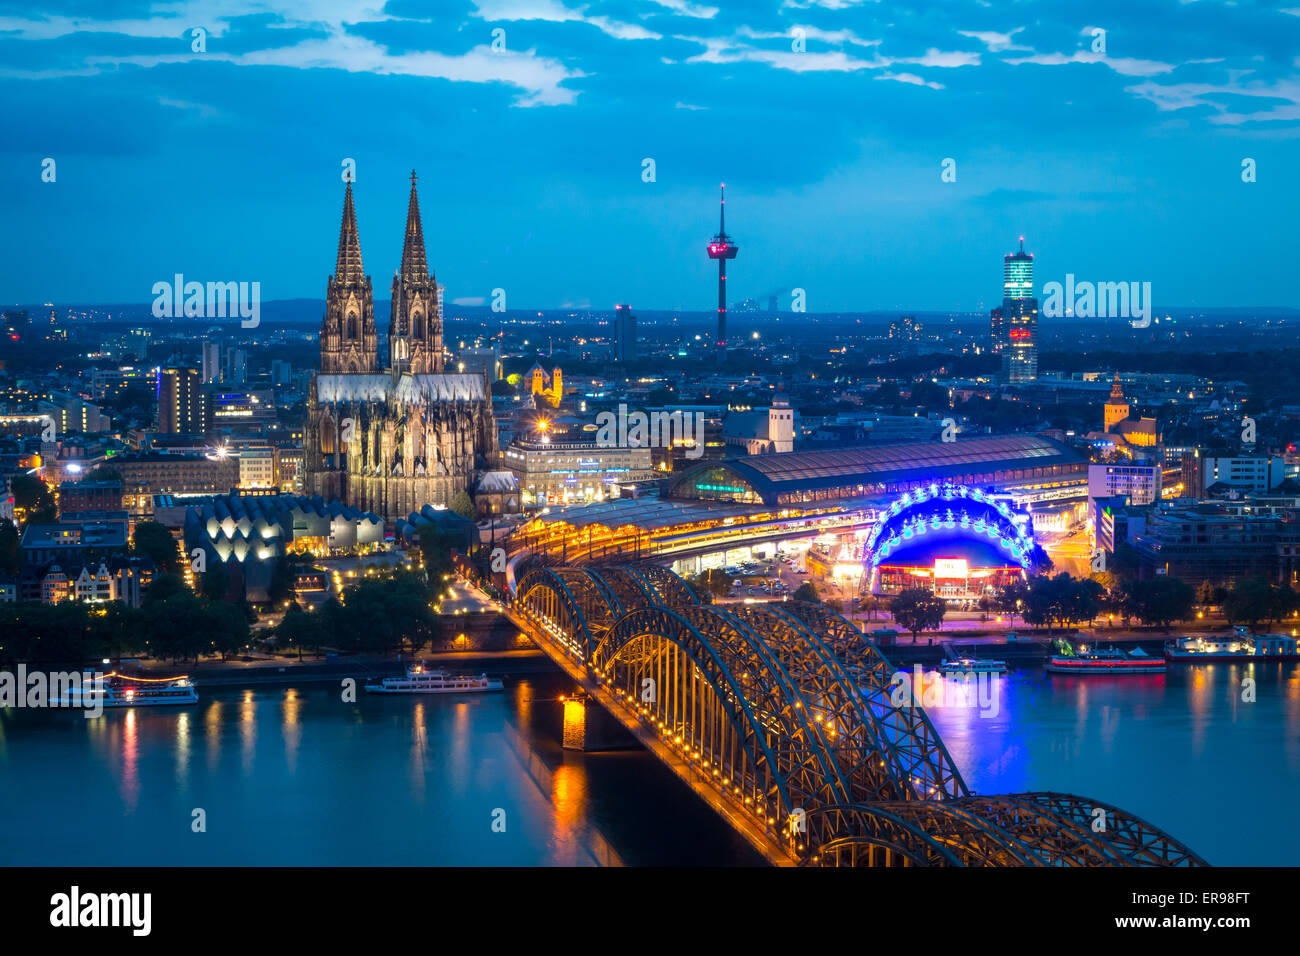 Cologne Cathedral and Hohenzollernbrücke at dusk - Stock Image